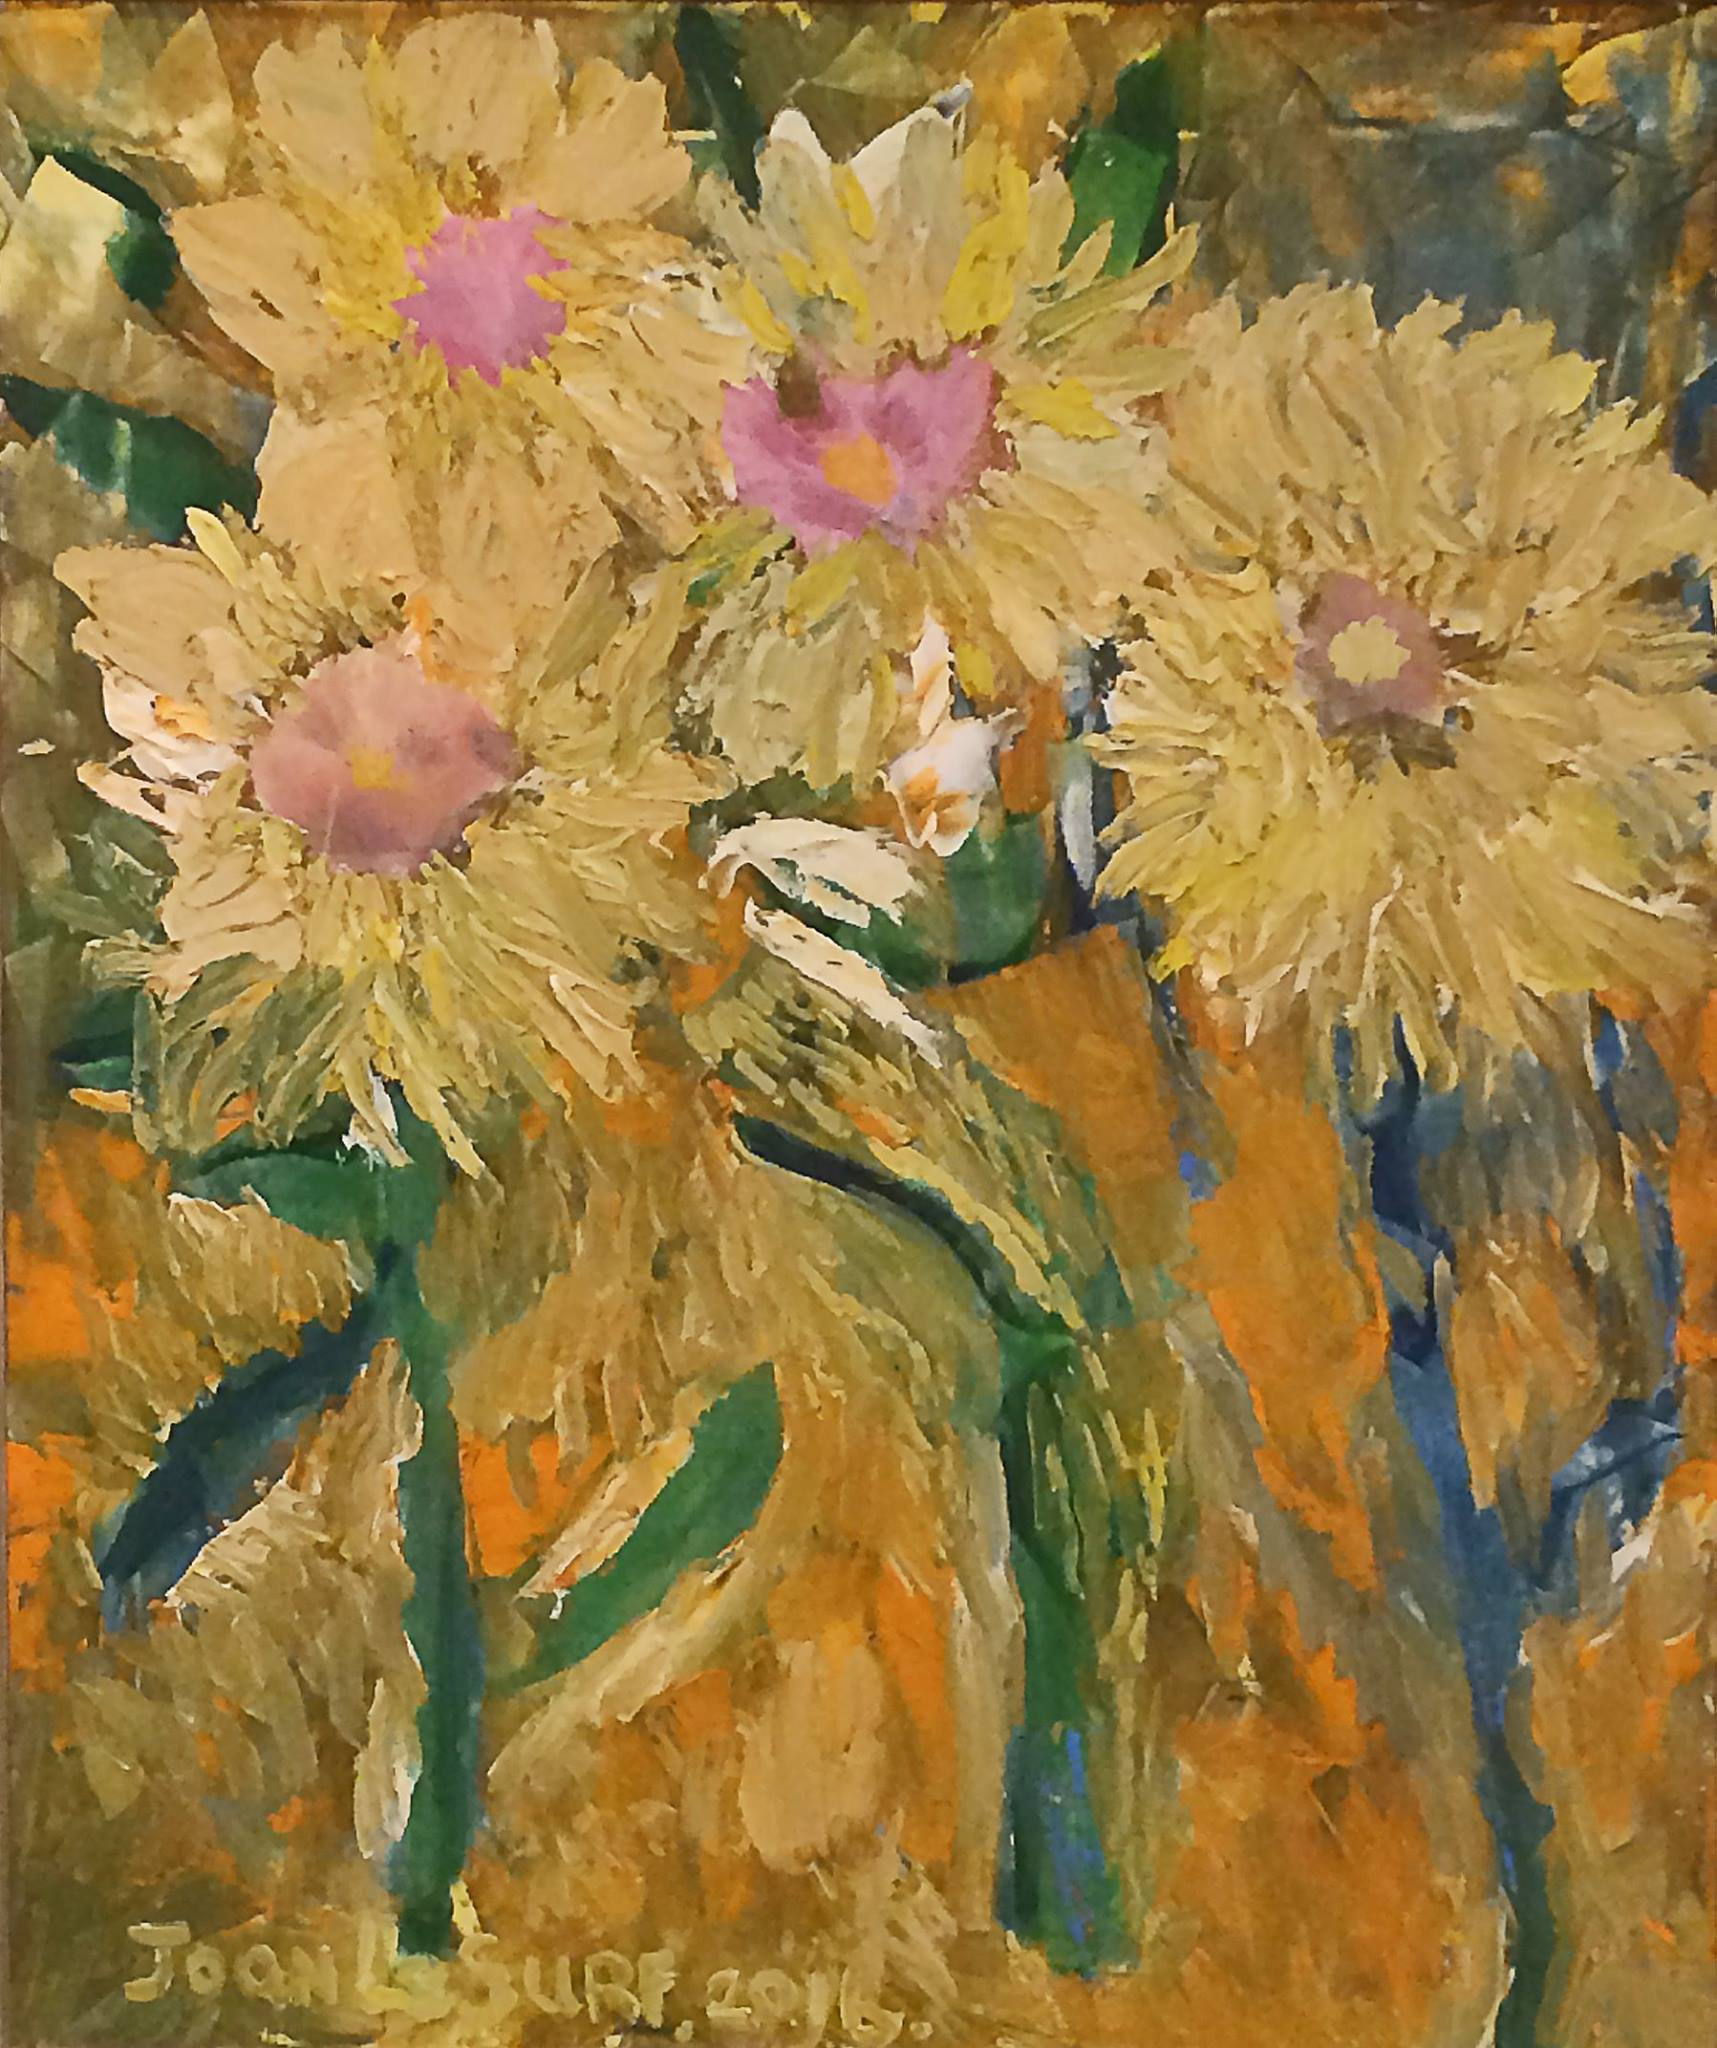 Chrysanthemums, oil painting by Joan Le Surf